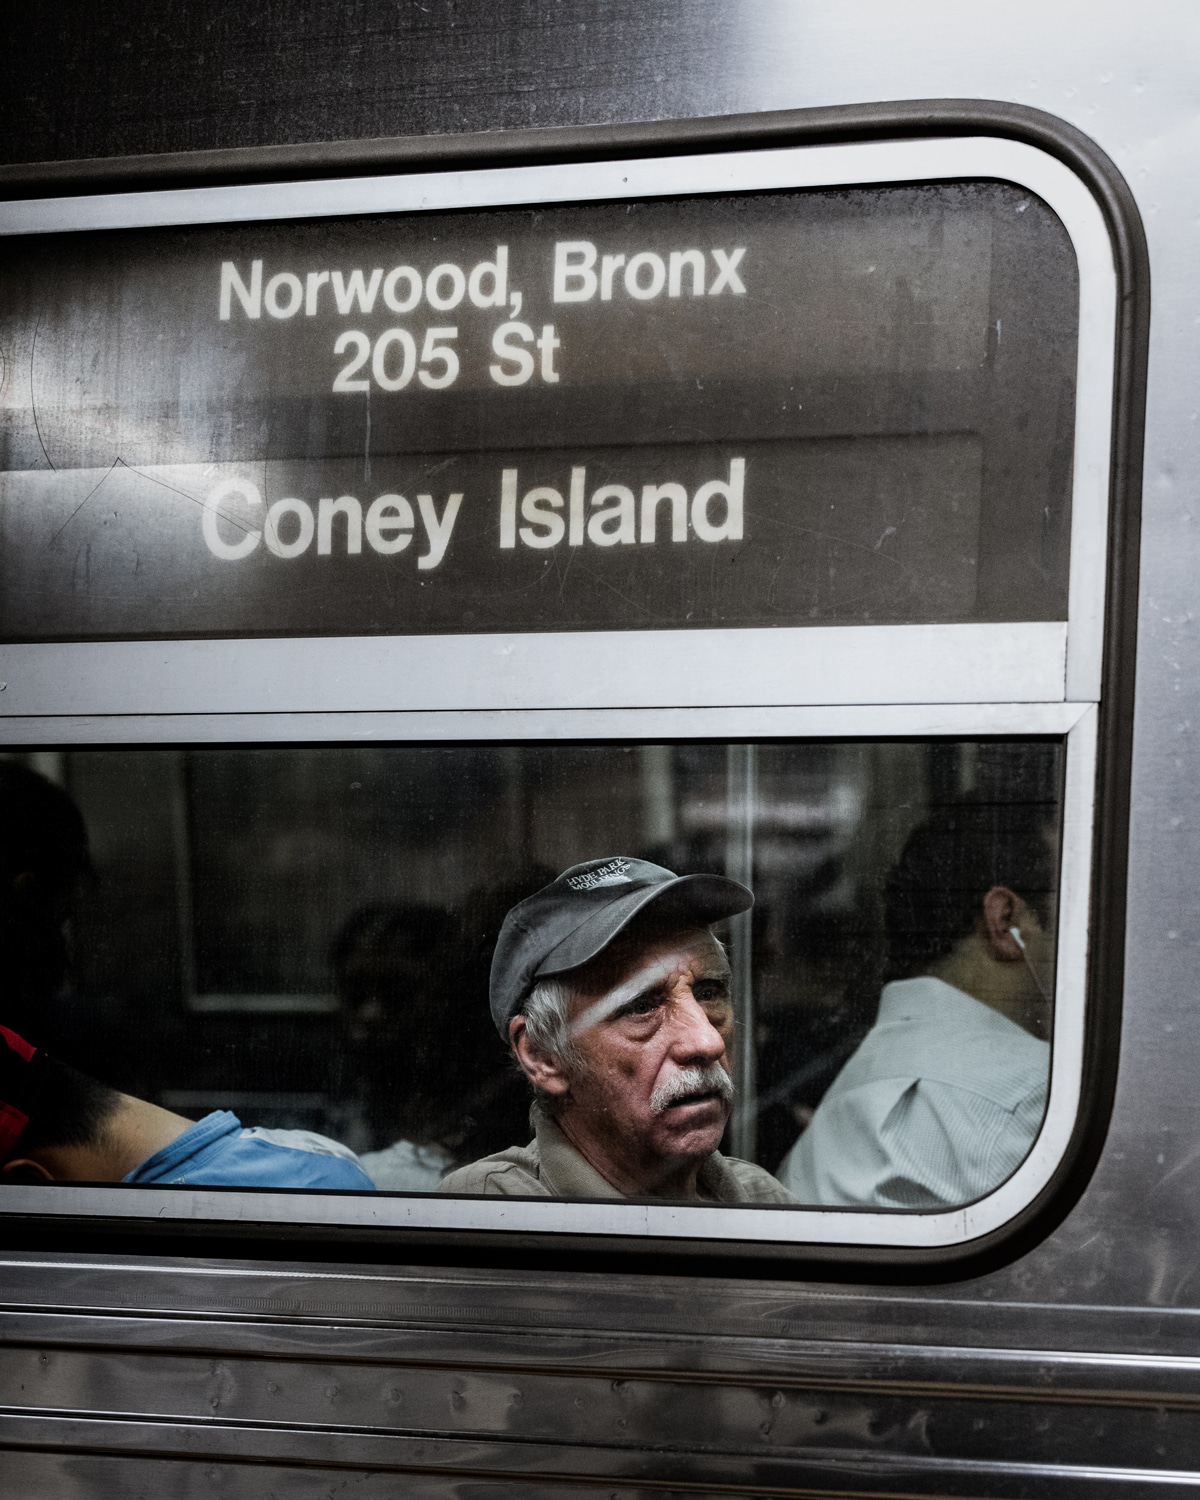 Candid Photos of Strangers by Colin Ridgway